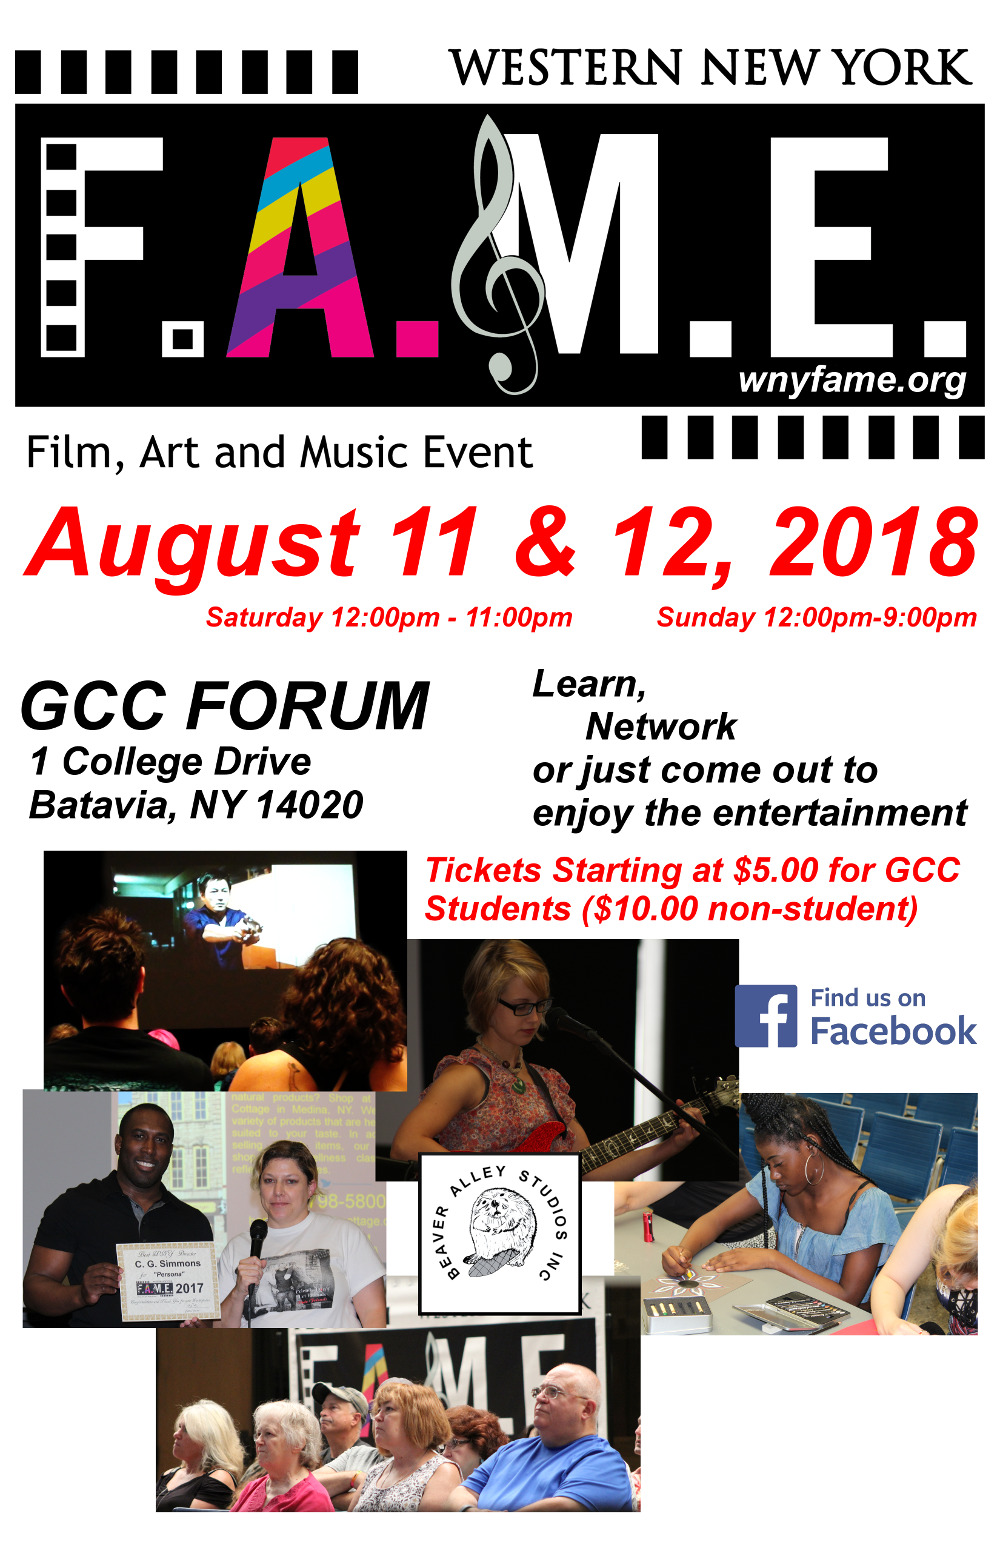 WNY FAME AUGUST 11 and 12, 2018